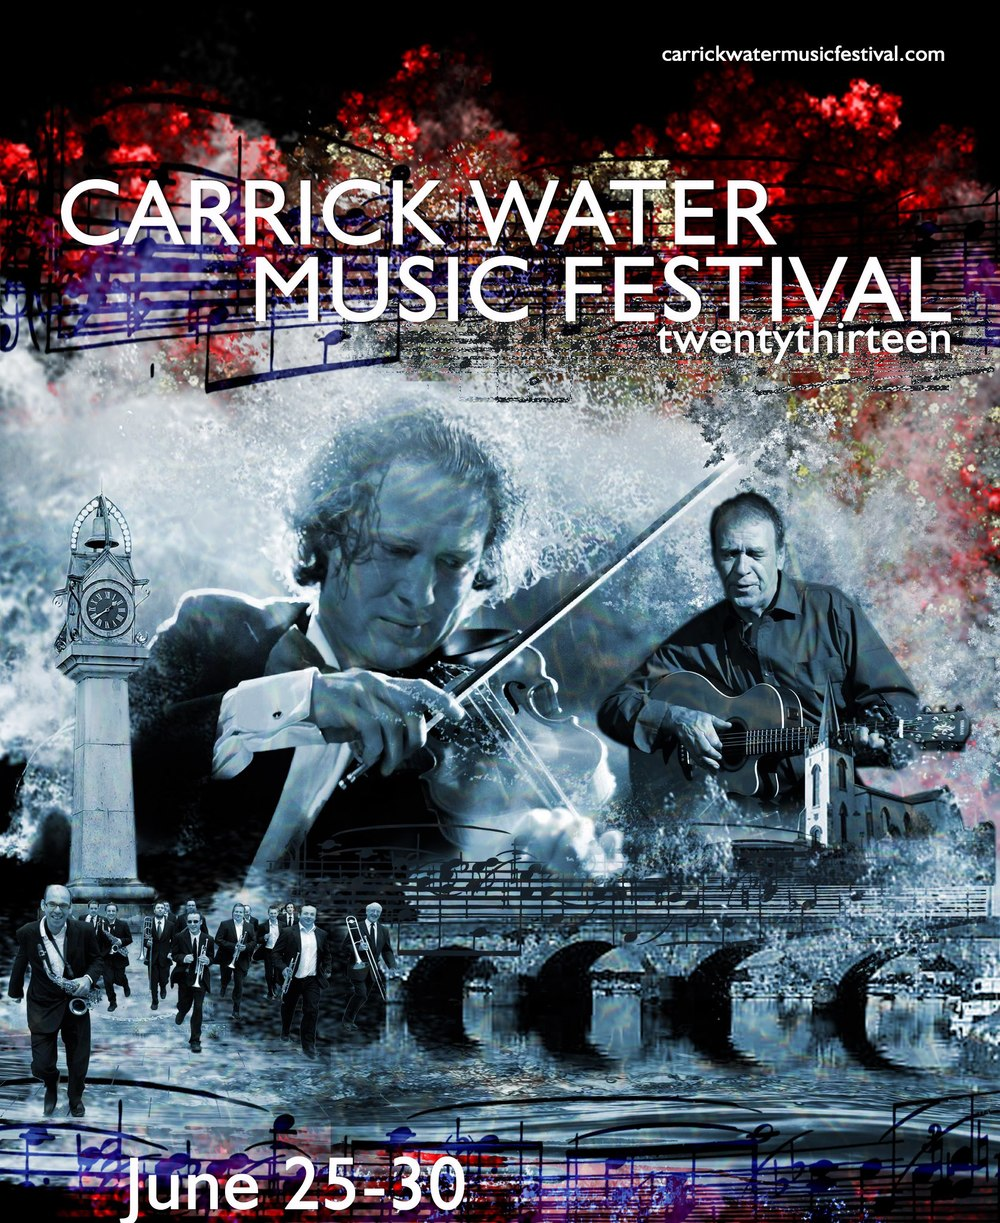 Carrick_water_music.jpg